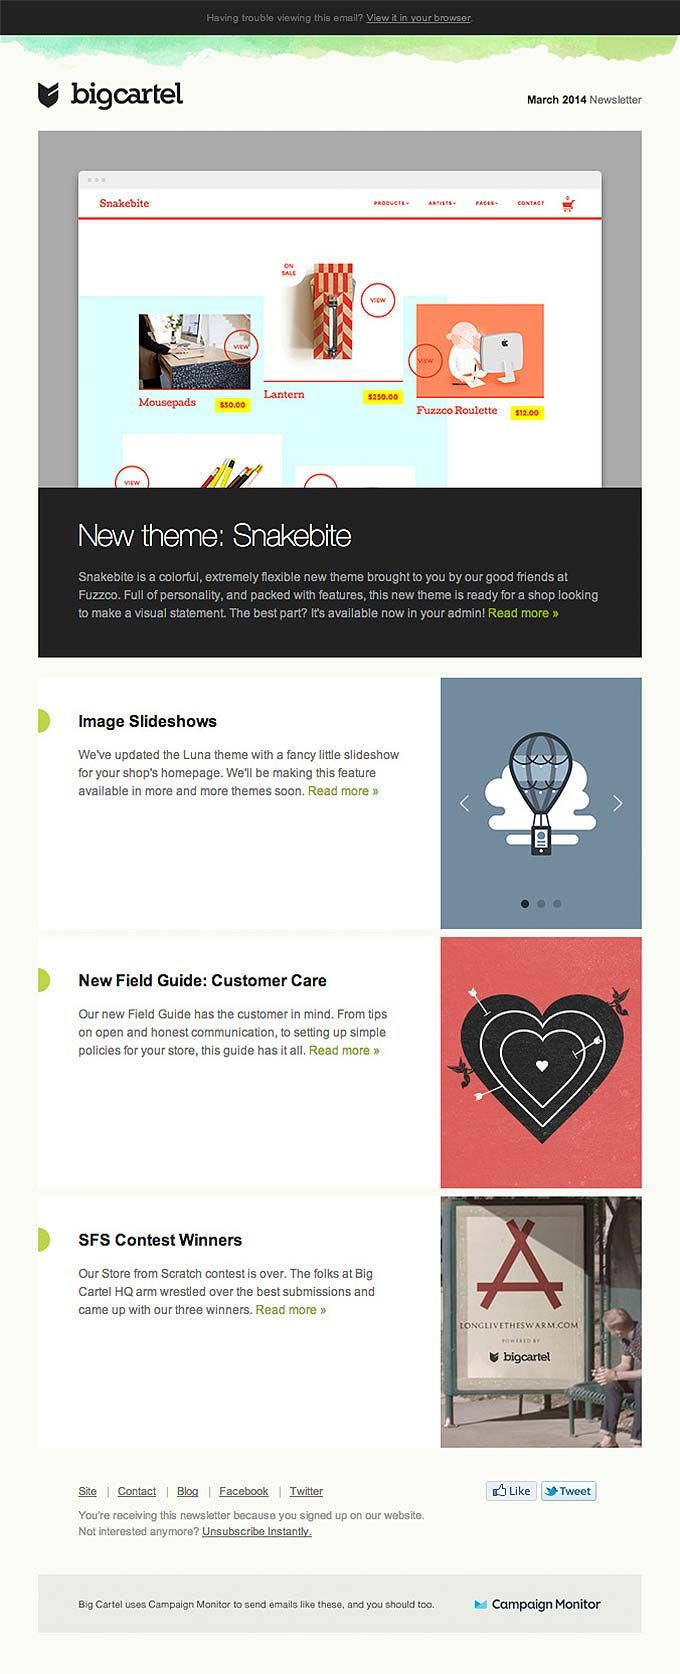 Newsletter-Email-Design-from-BigCartel